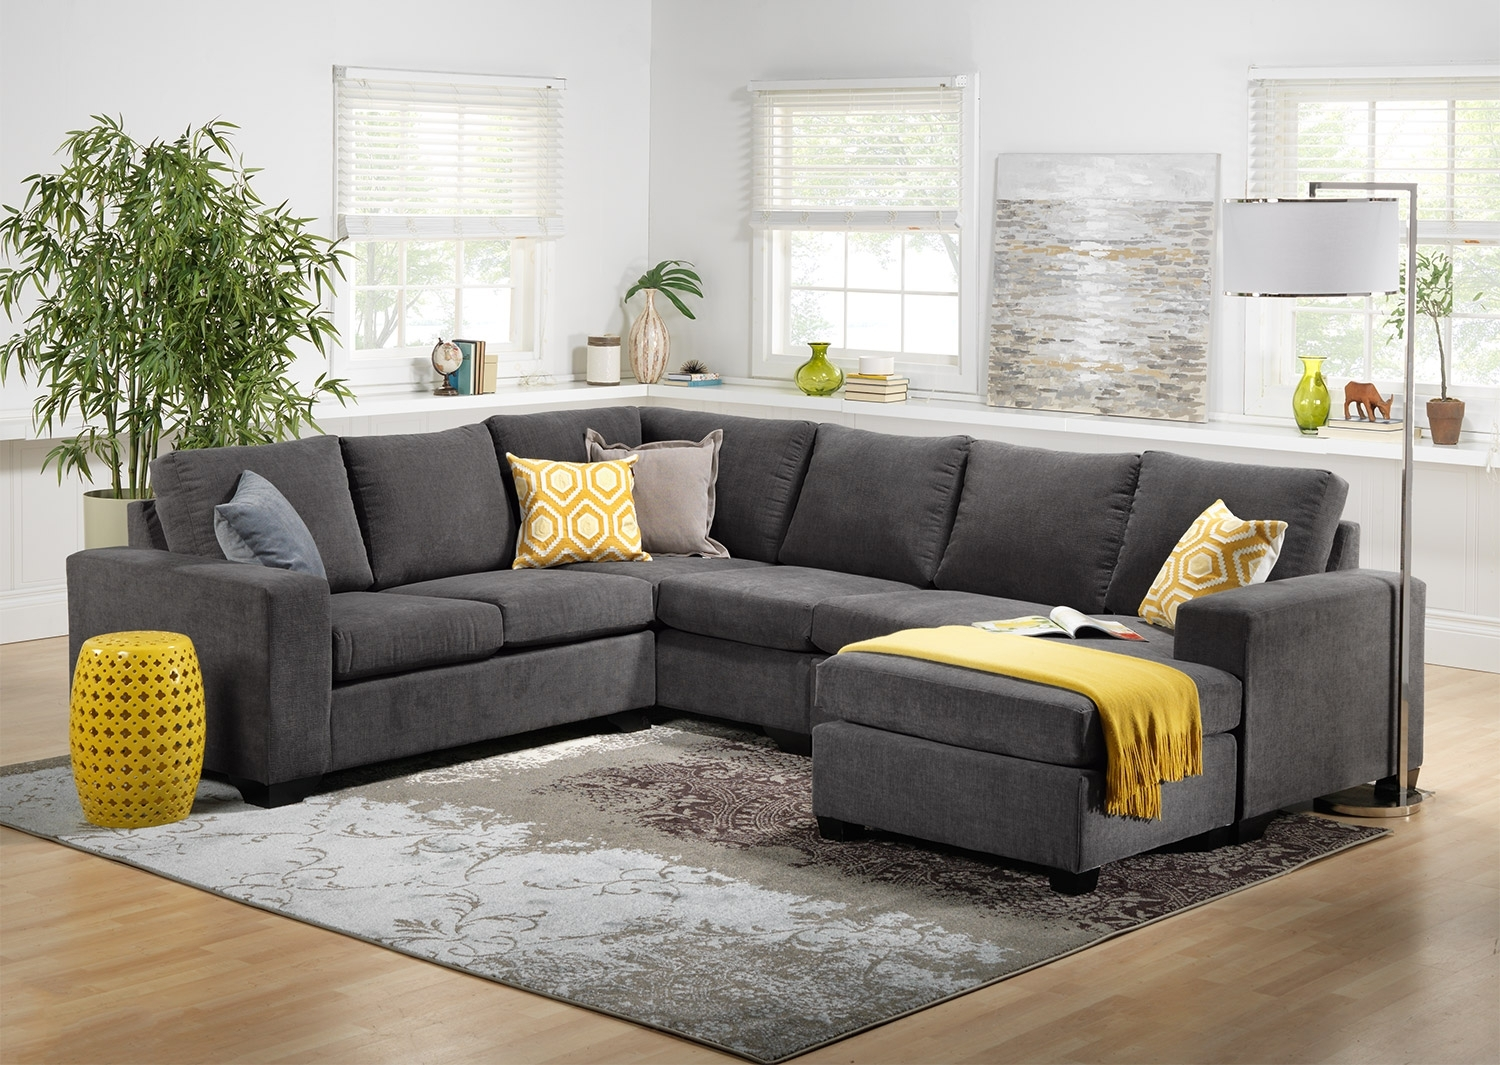 Used Sectional Sofas For Sale Edmonton Best Home Furniture Ideas for Ontario Canada Sectional Sofas (Image 10 of 10)